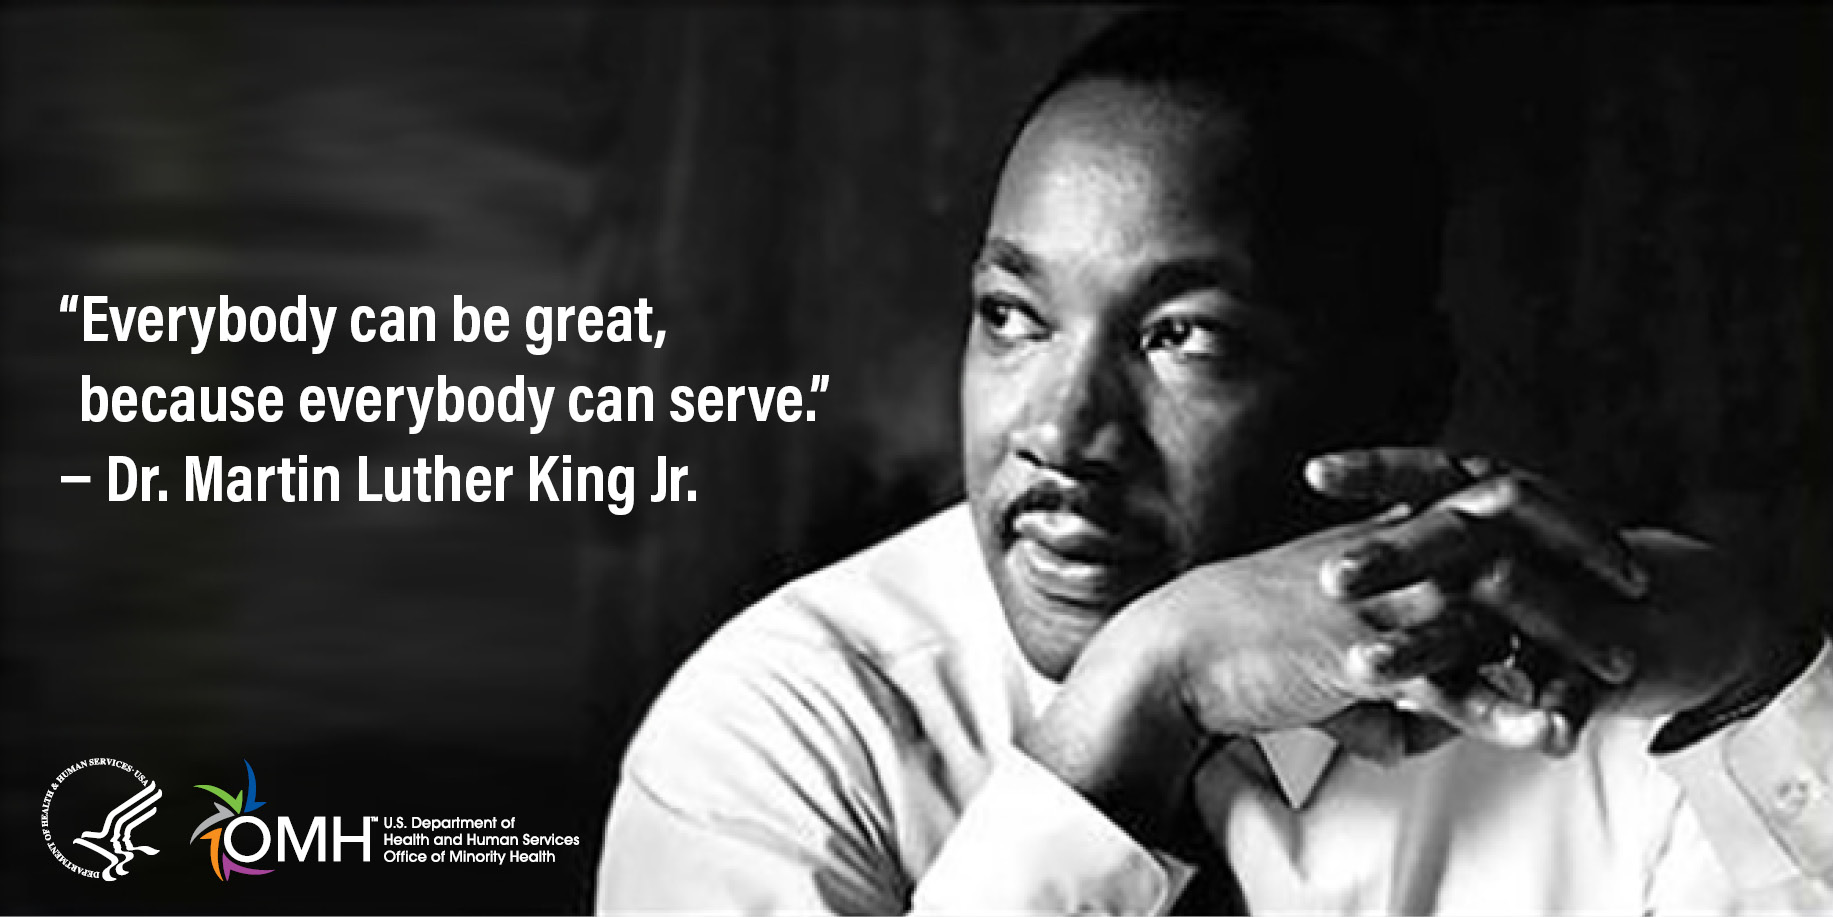 """Everybody can be great, because everybody can serve."" - Martin Luther King Jr."